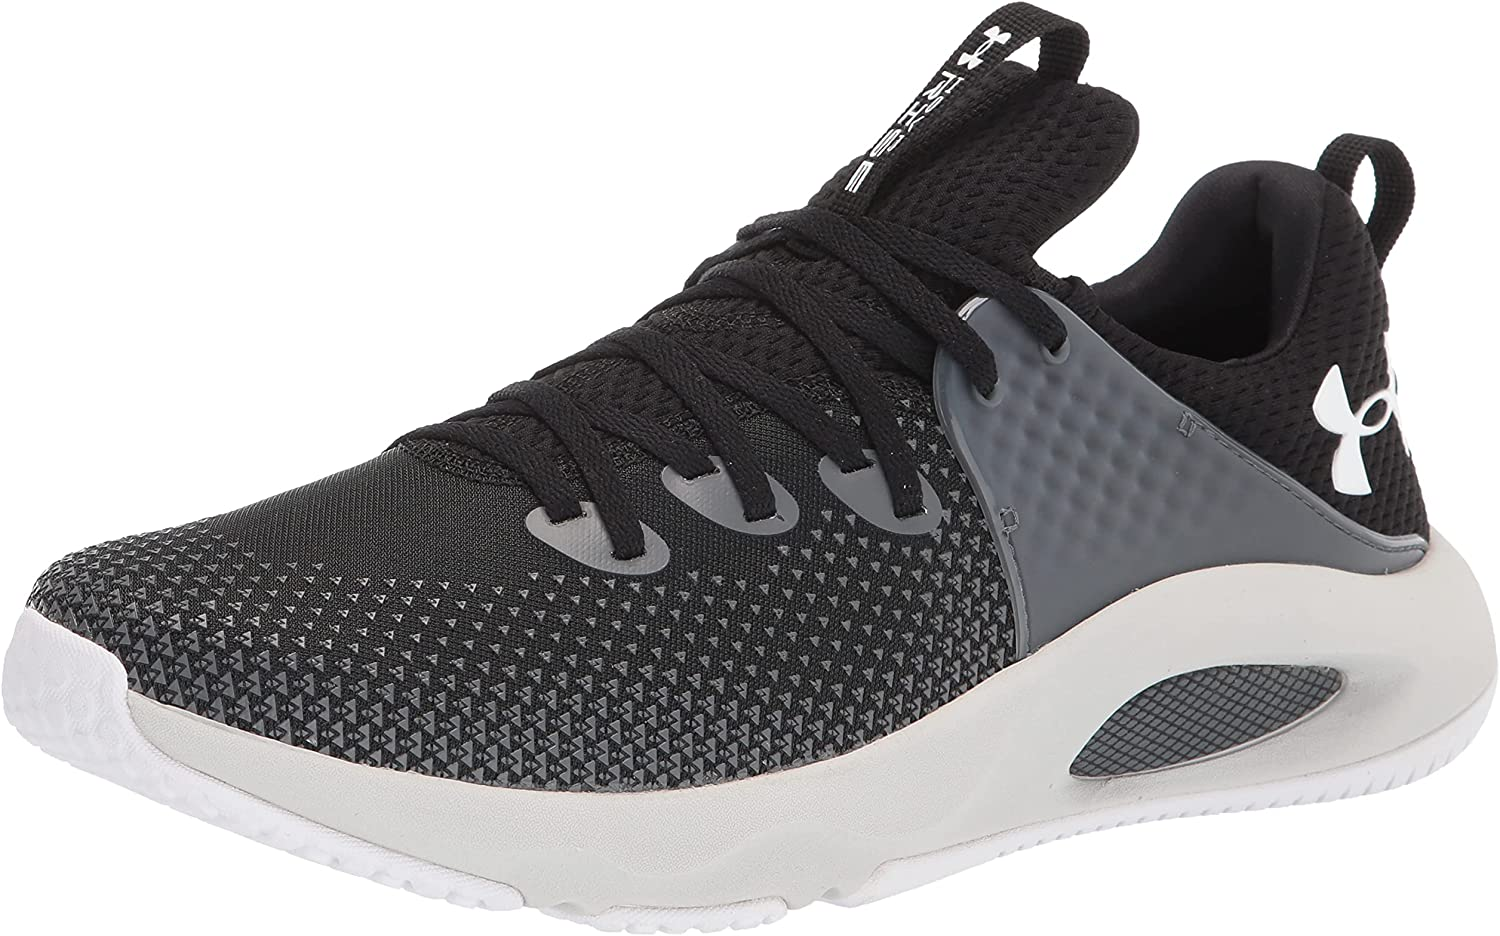 Under Armour Men's HOVR Rise 3 Trainer Max 83% OFF Popular product Cross